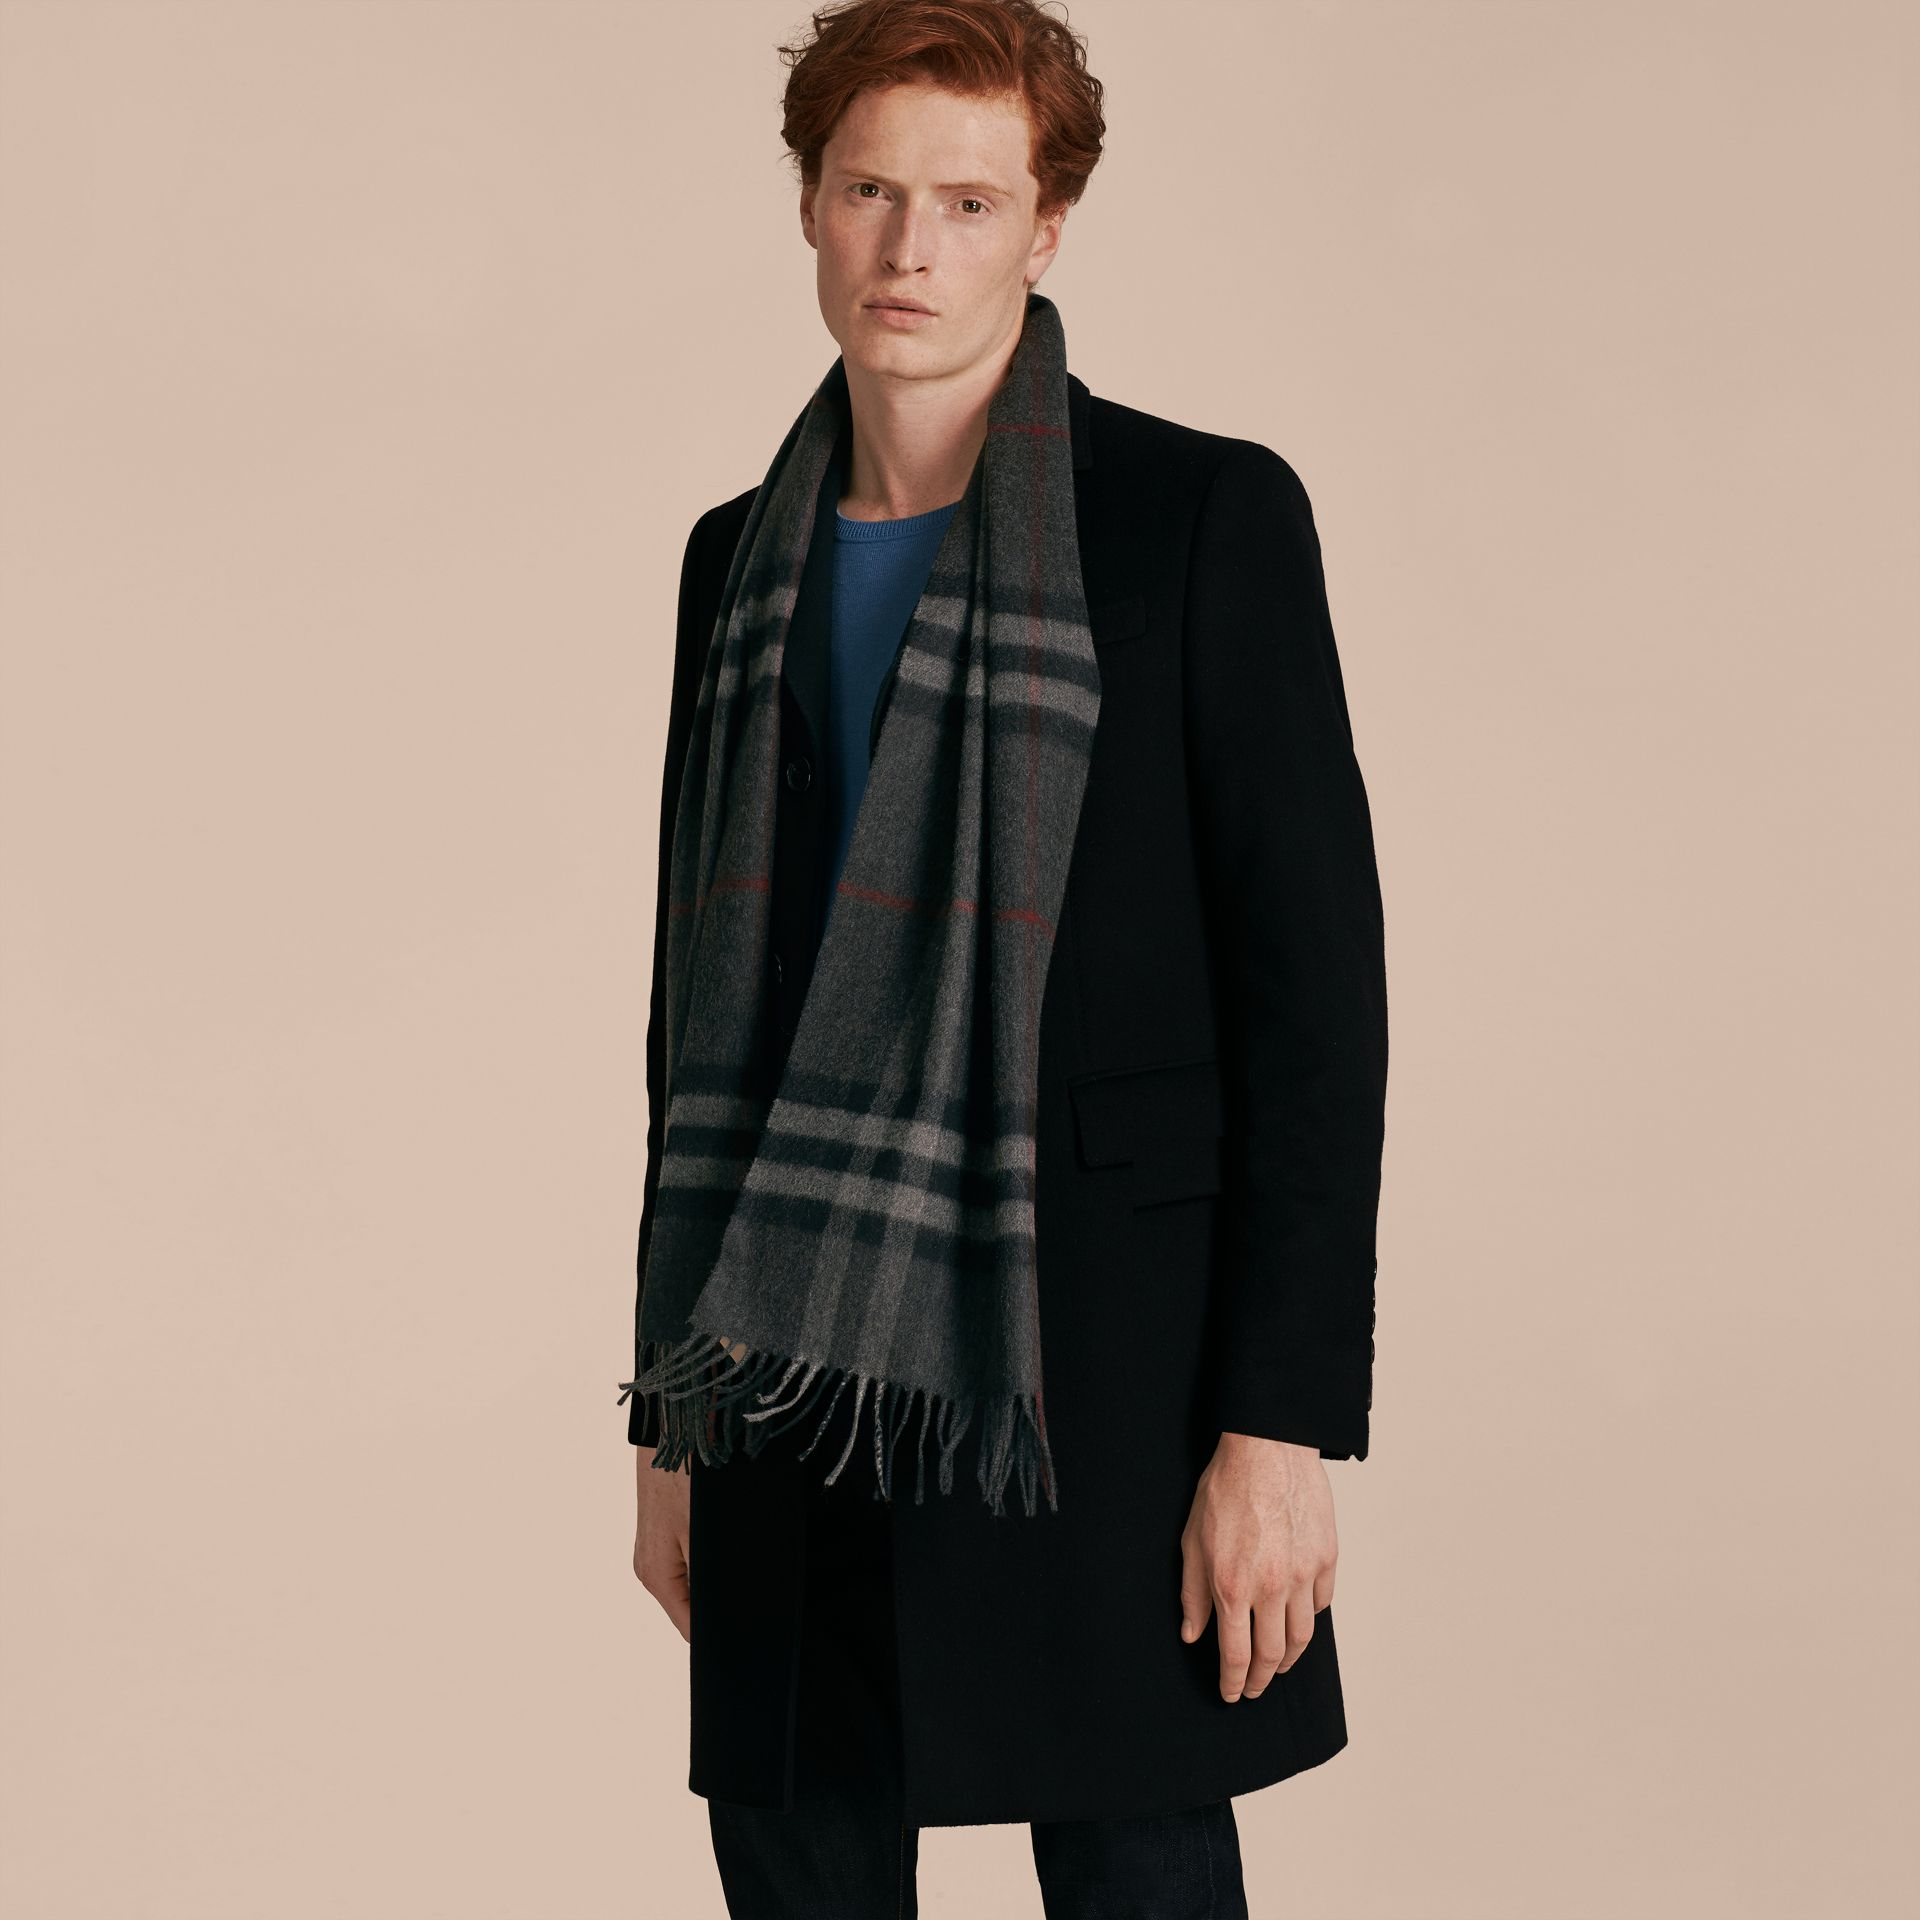 Charcoal check The Classic Cashmere Scarf in Check Charcoal - gallery image 3